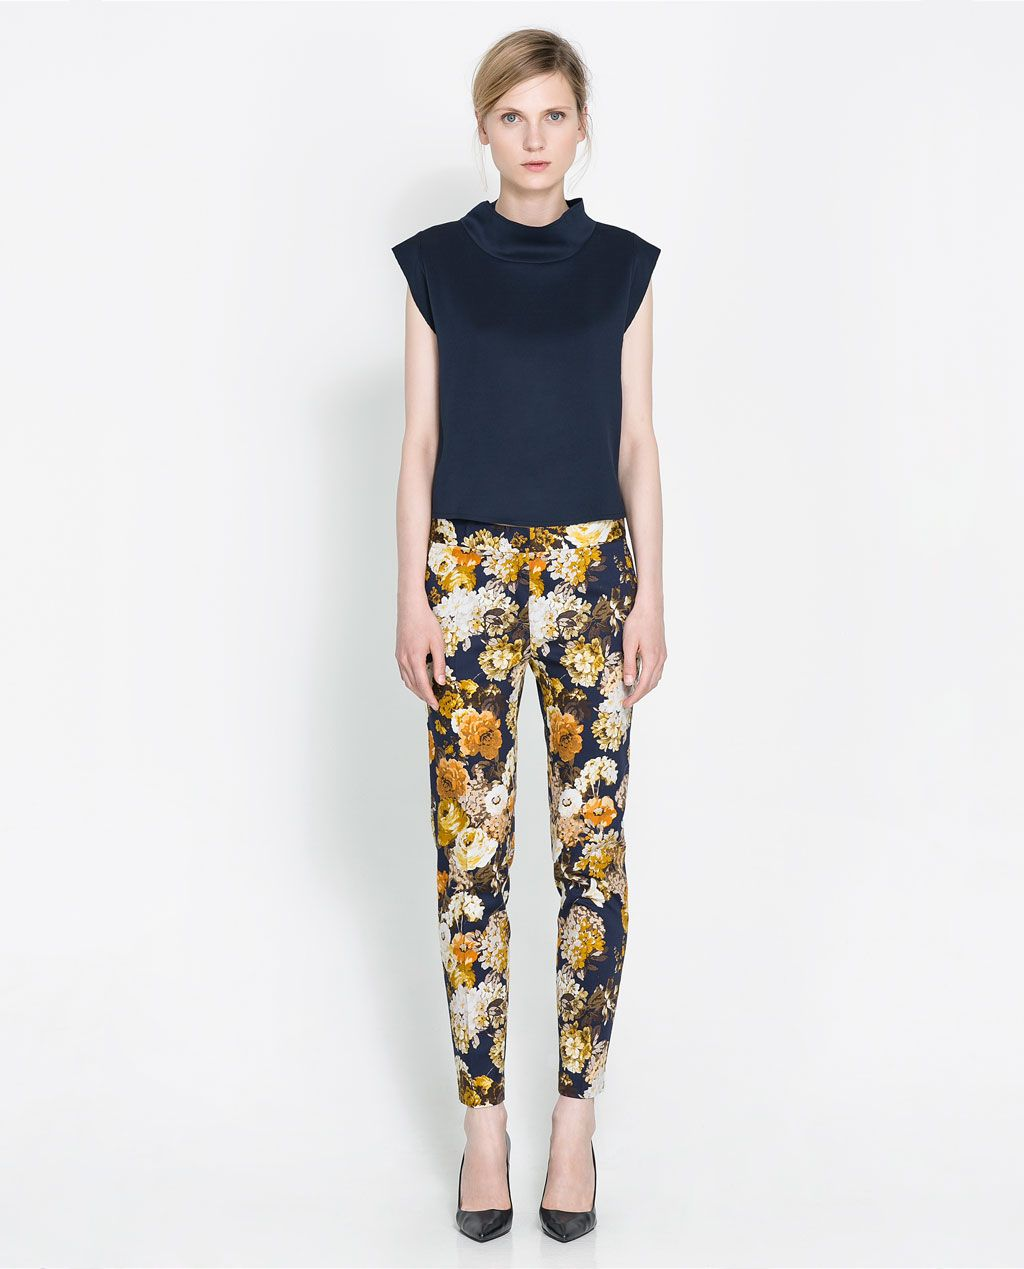 1 Trousers Print ZaraPantalones Image Floral Of From 1TKlcFJ3